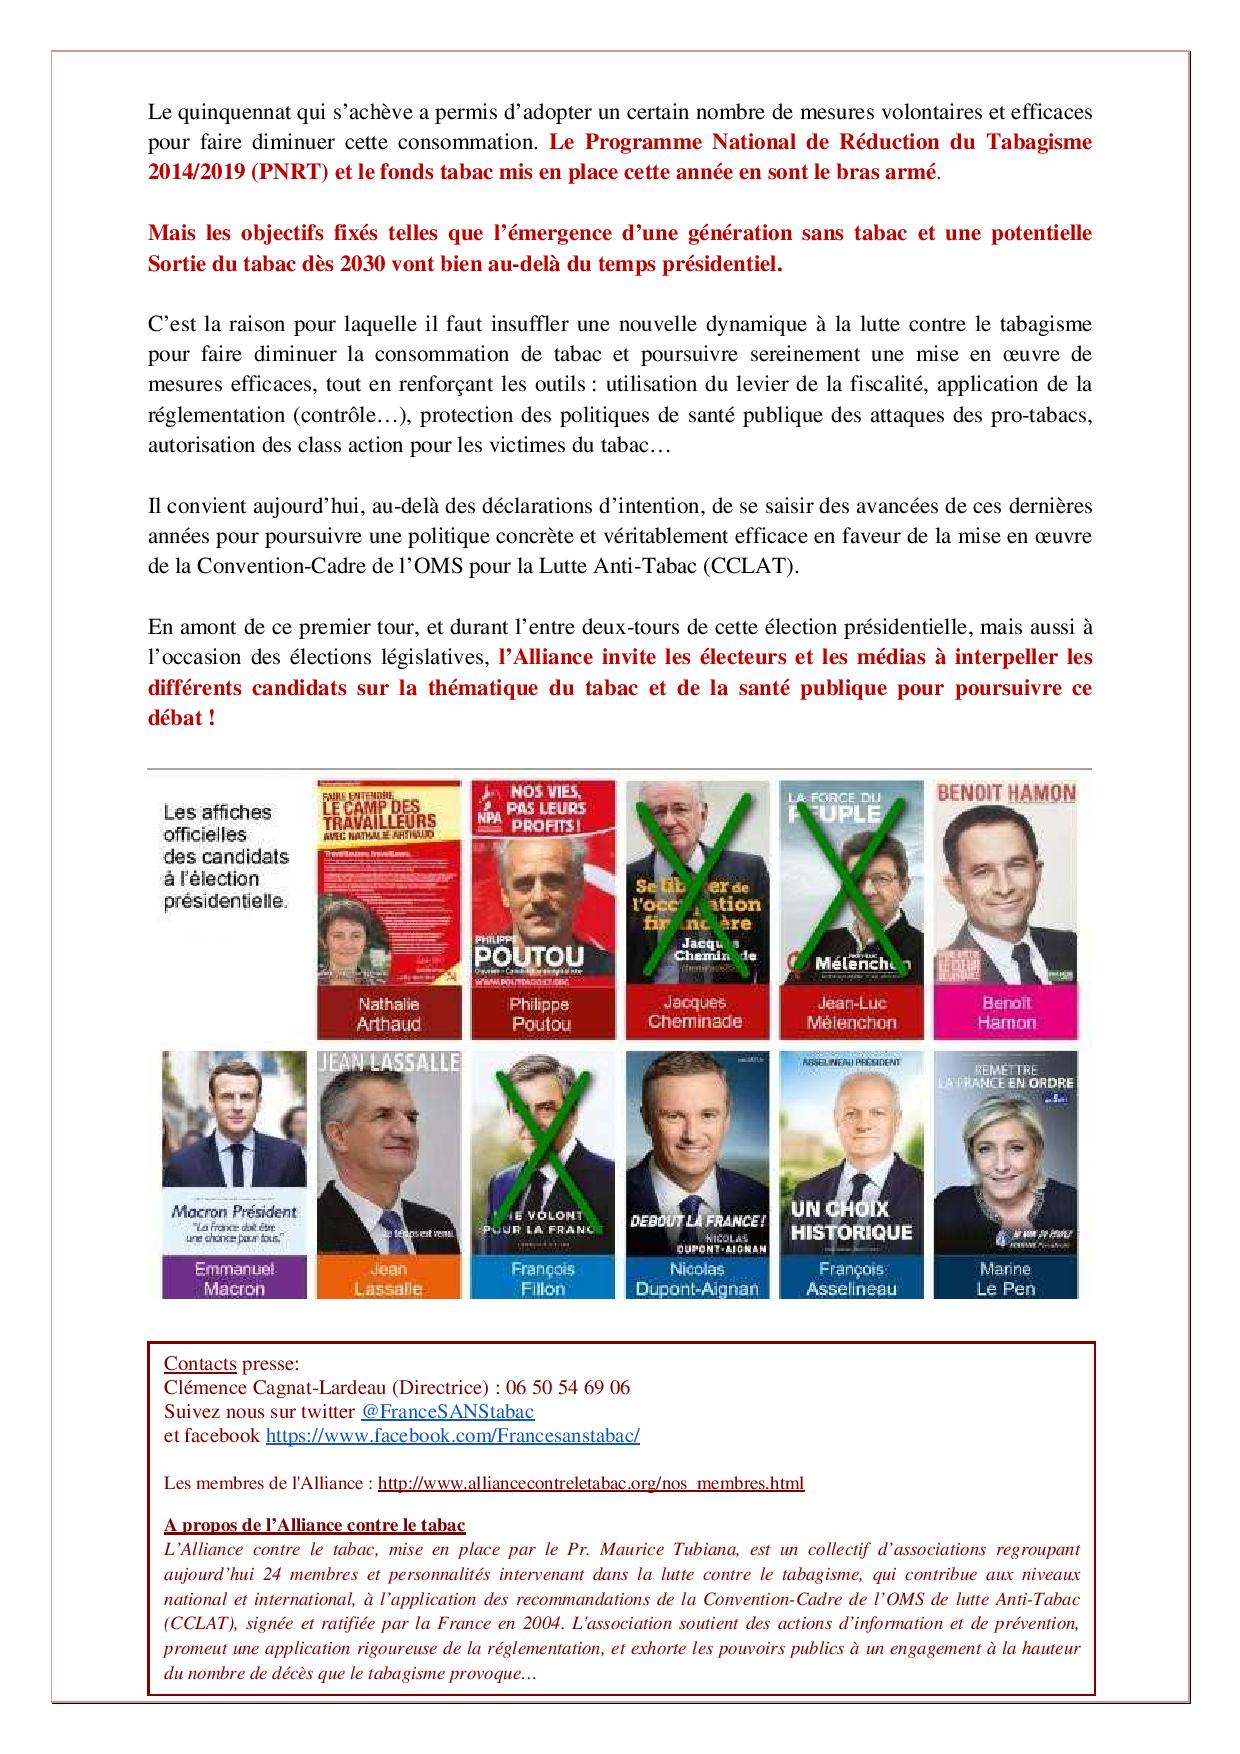 Alliance contre le tabac - DP - 11042017-page-003.jpg